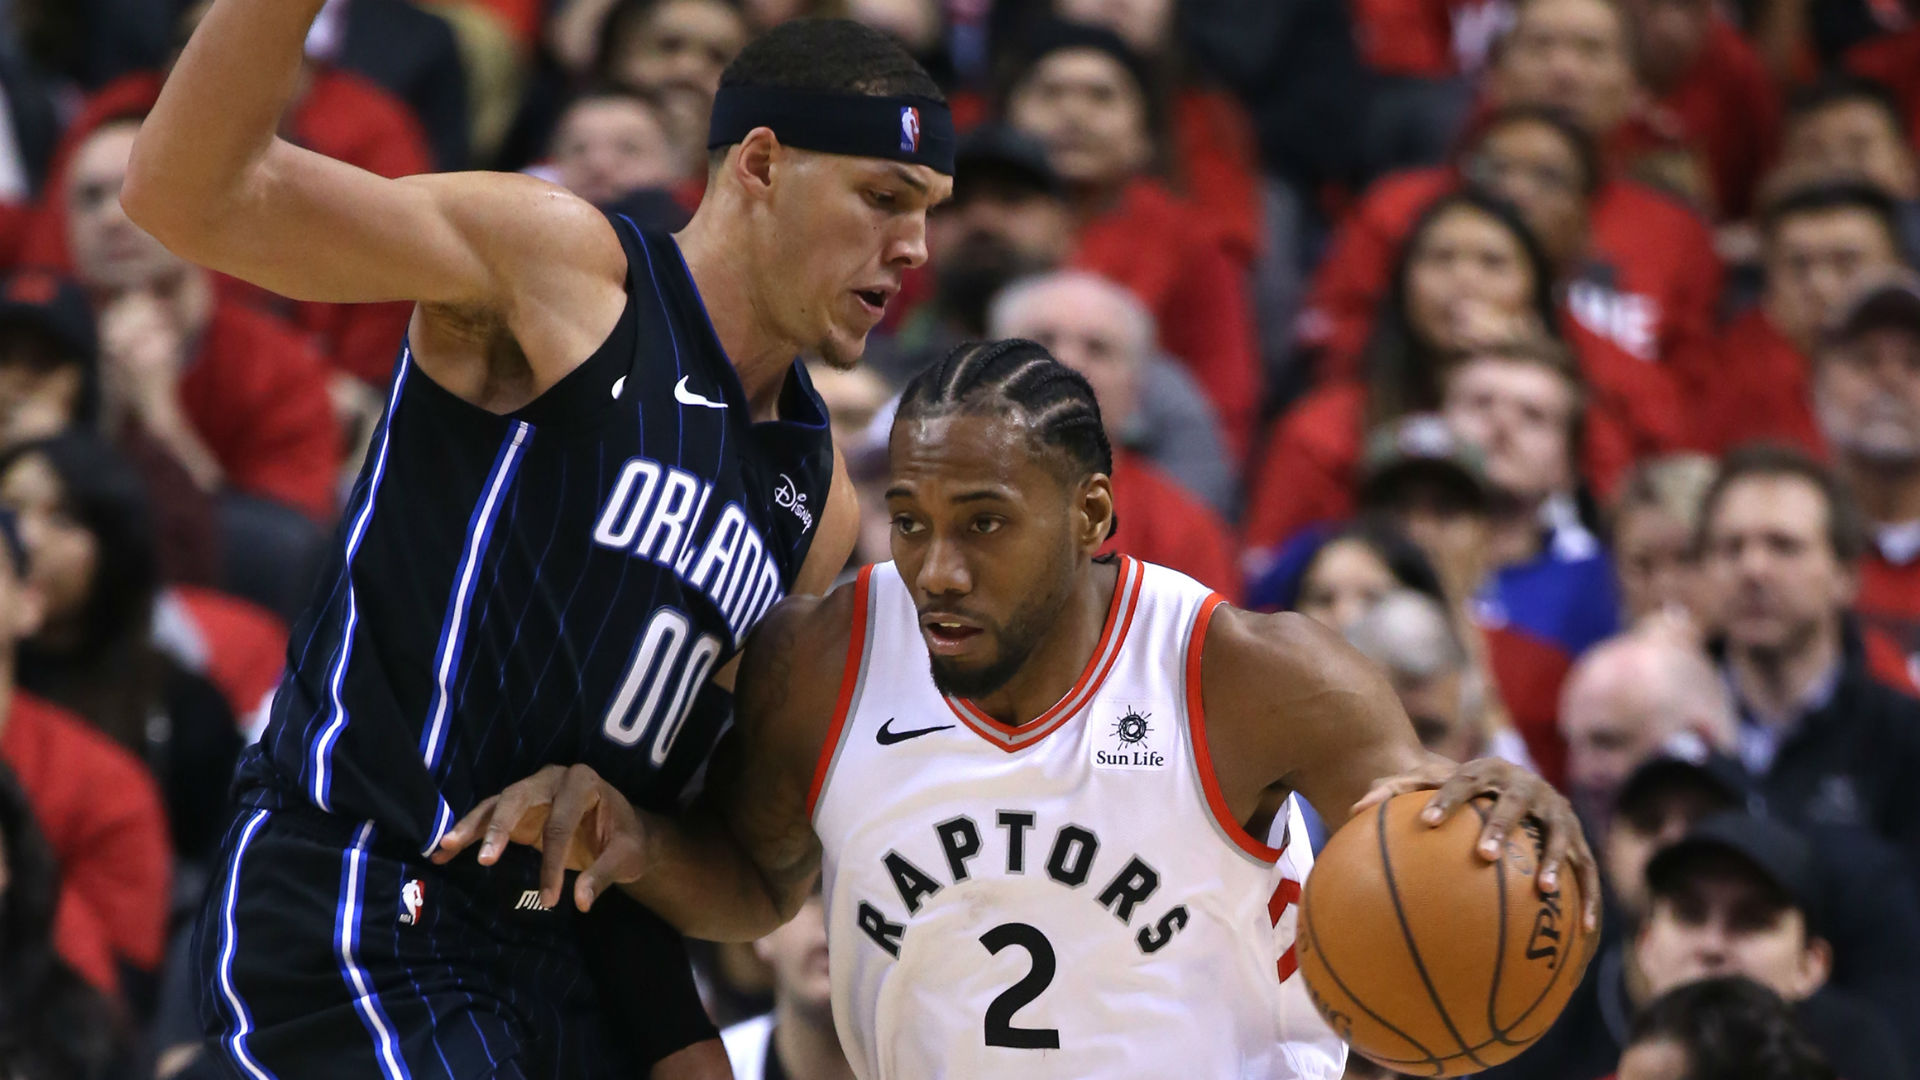 Nba Playoffs 2019 Scores And Highlights From Raptors Vs